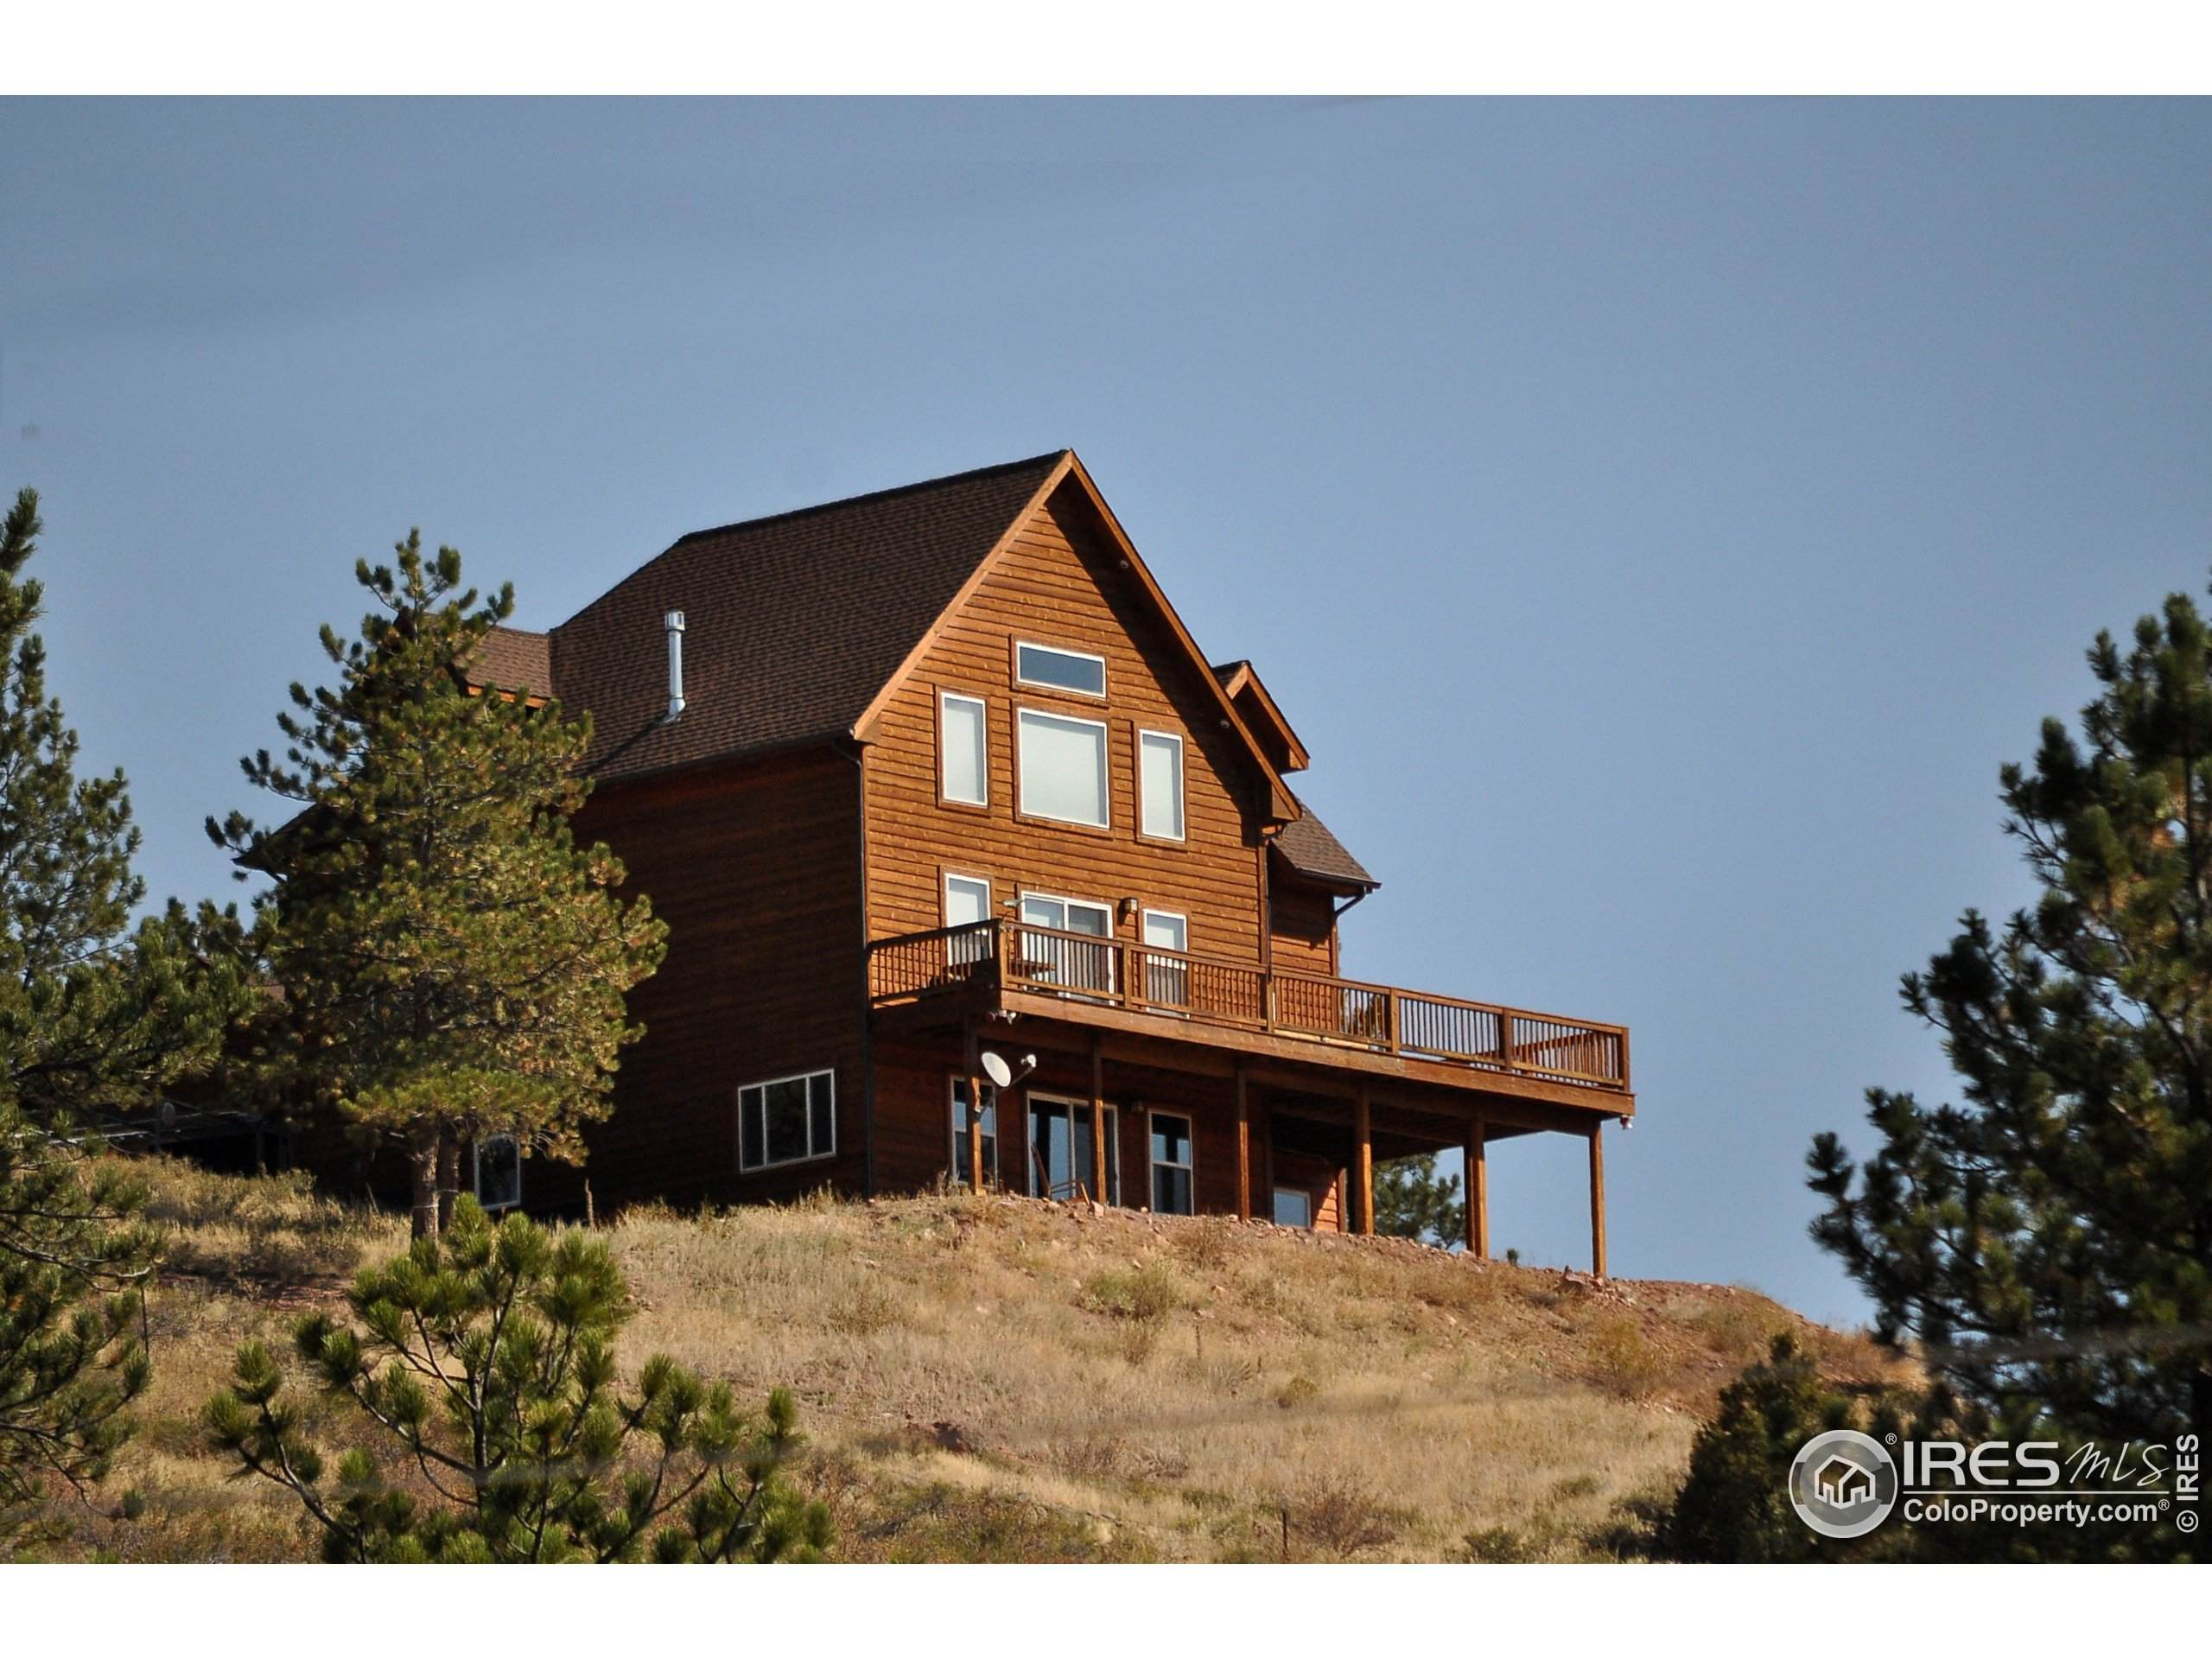 2829 Apricot Ave, Greeley, CO 80631 (MLS #940768) :: RE/MAX Alliance